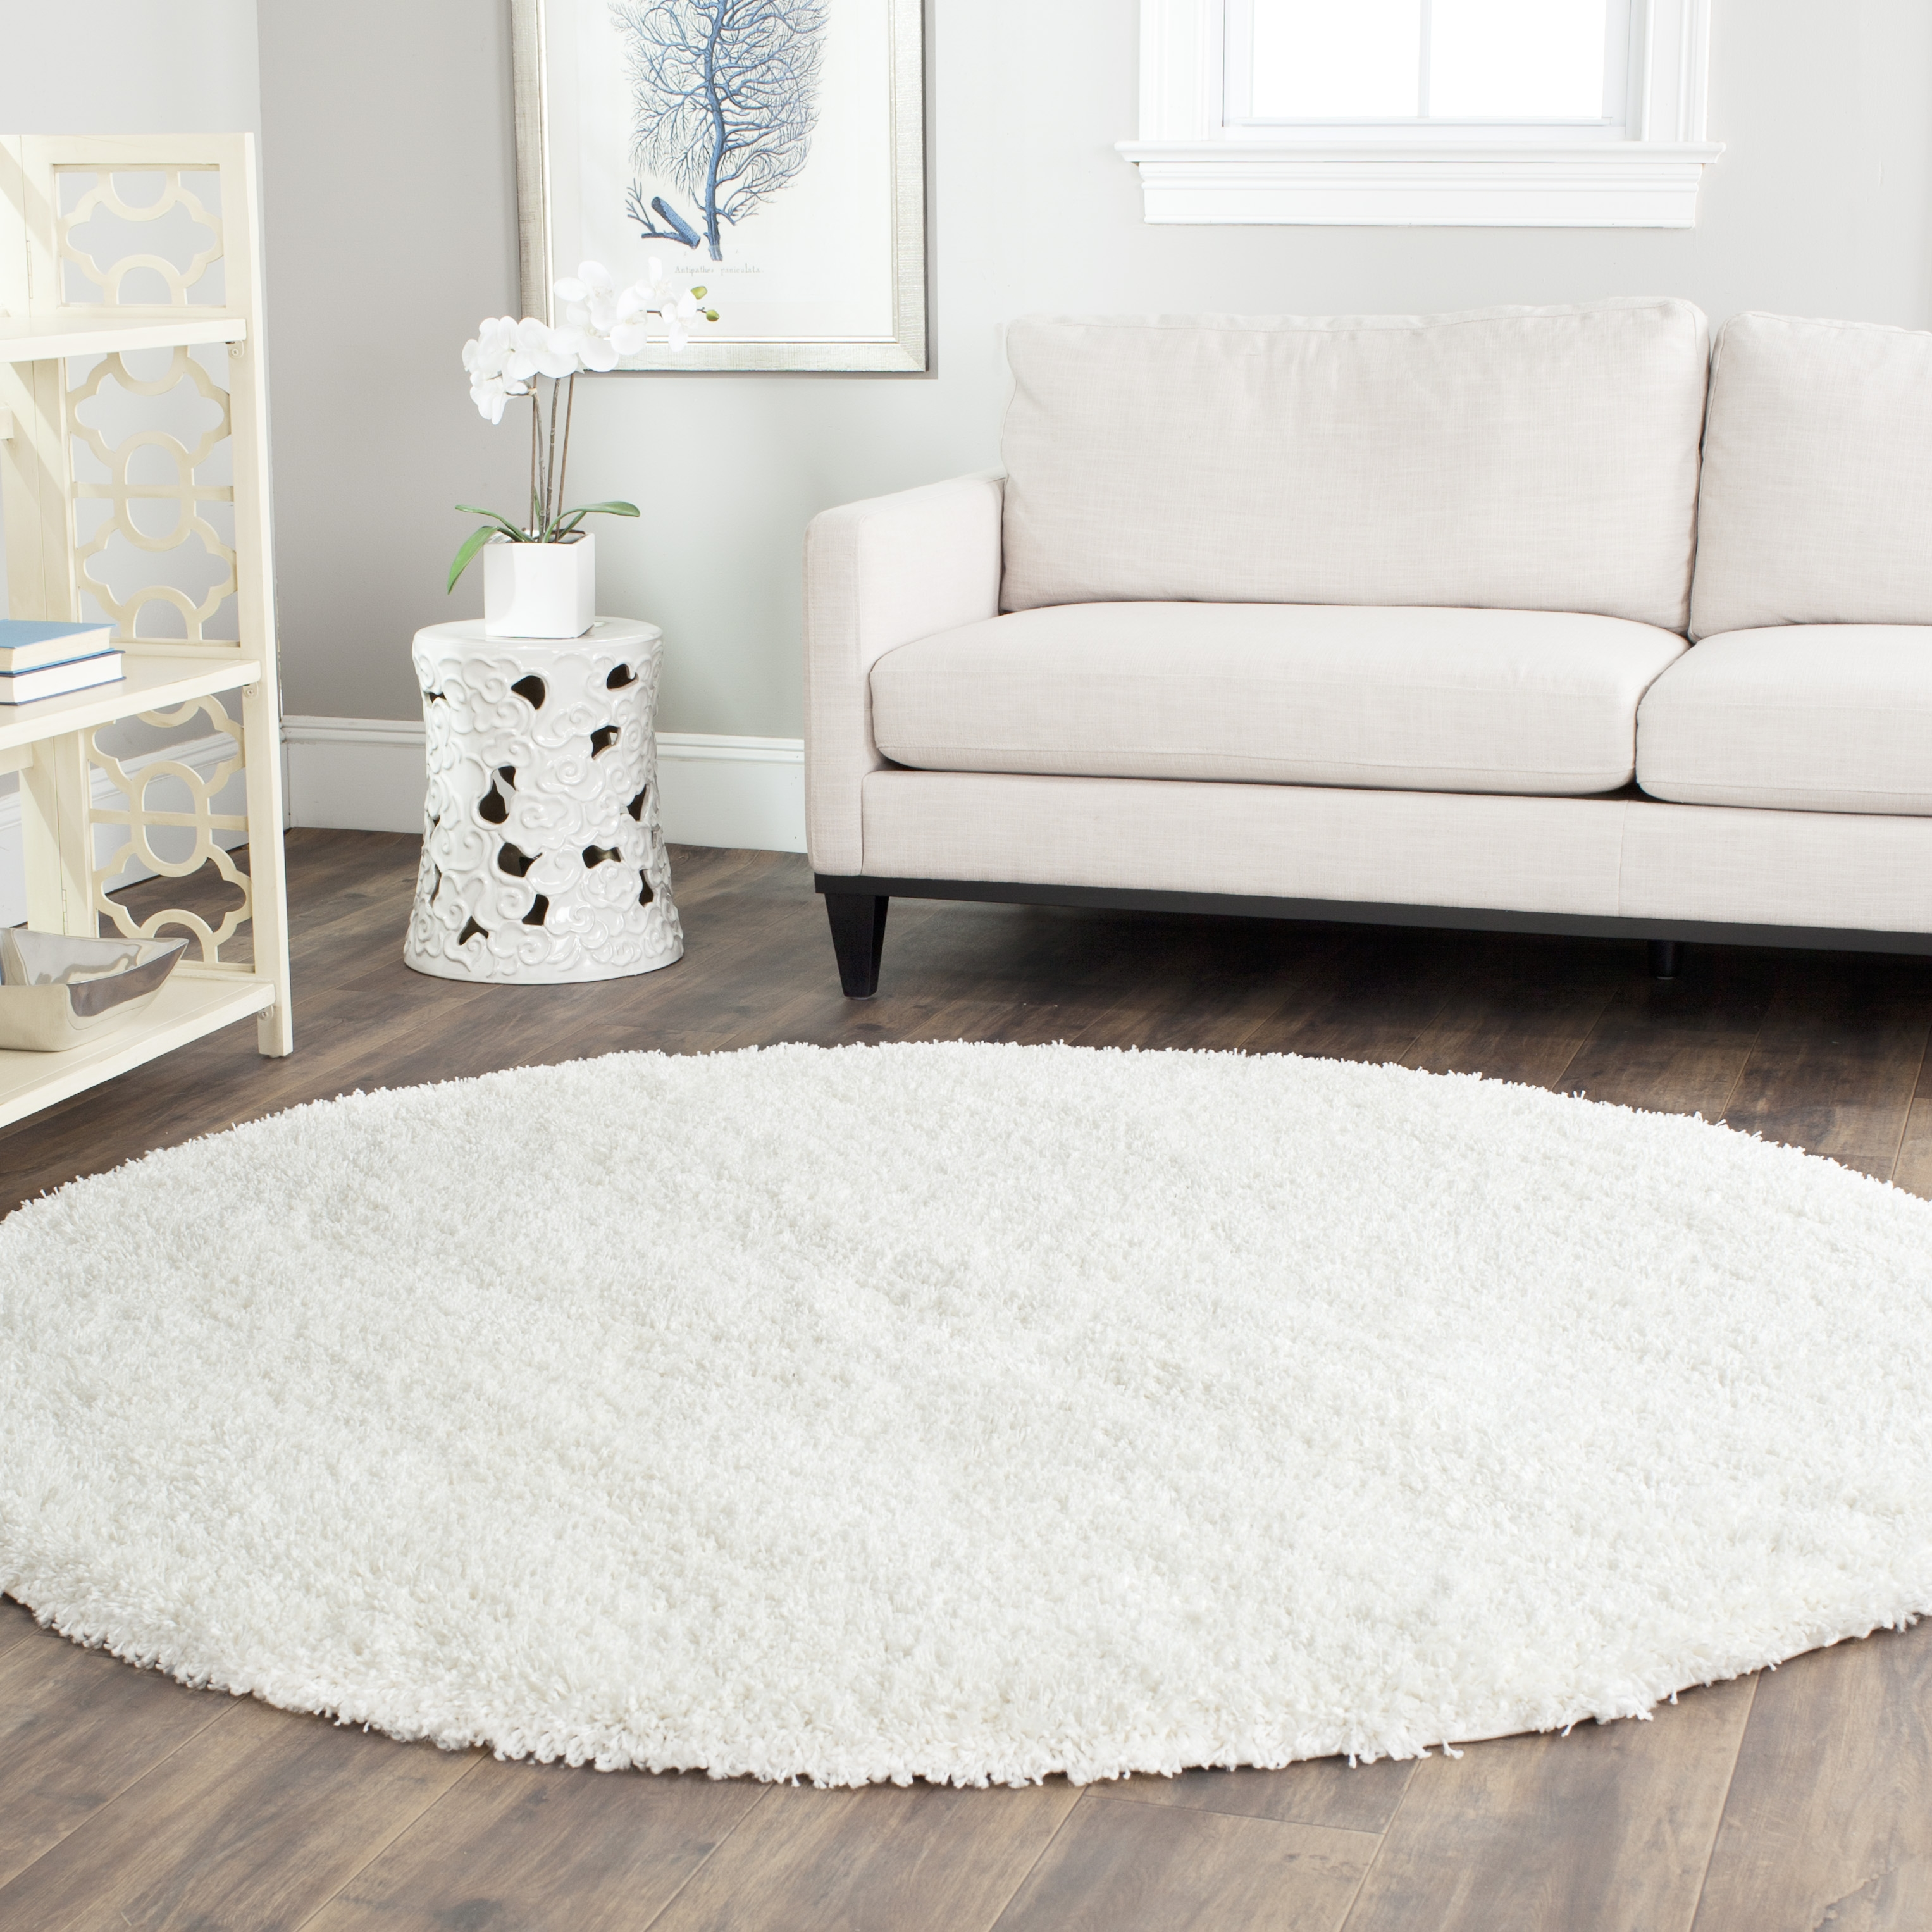 Rugs Dubai Sisal Shaggy Rugs In Dubai Dubai Furniture For Customized Rugs (Image 14 of 15)